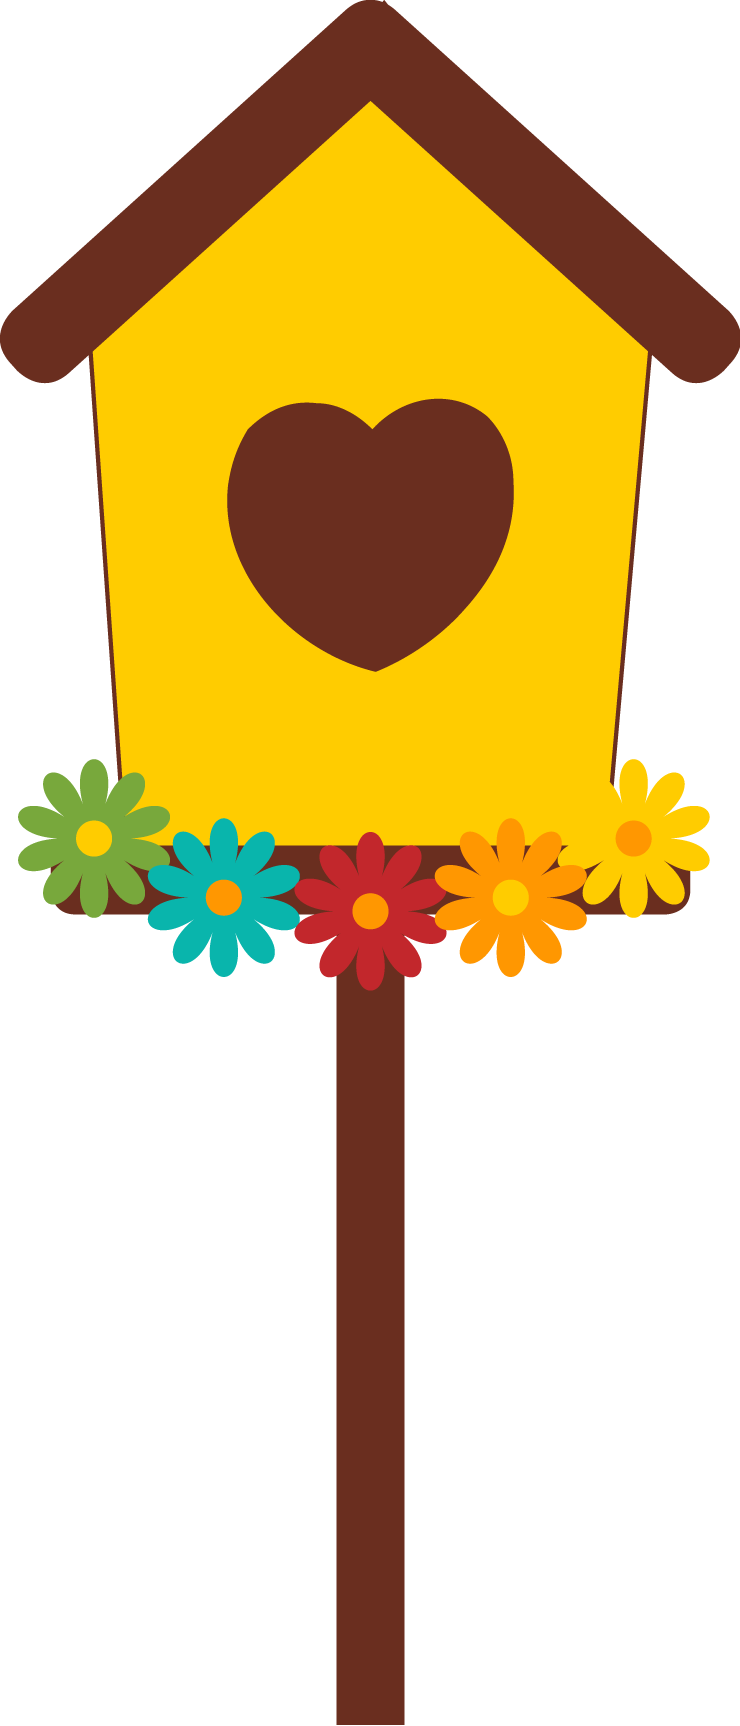 birdhouse clipart jittery